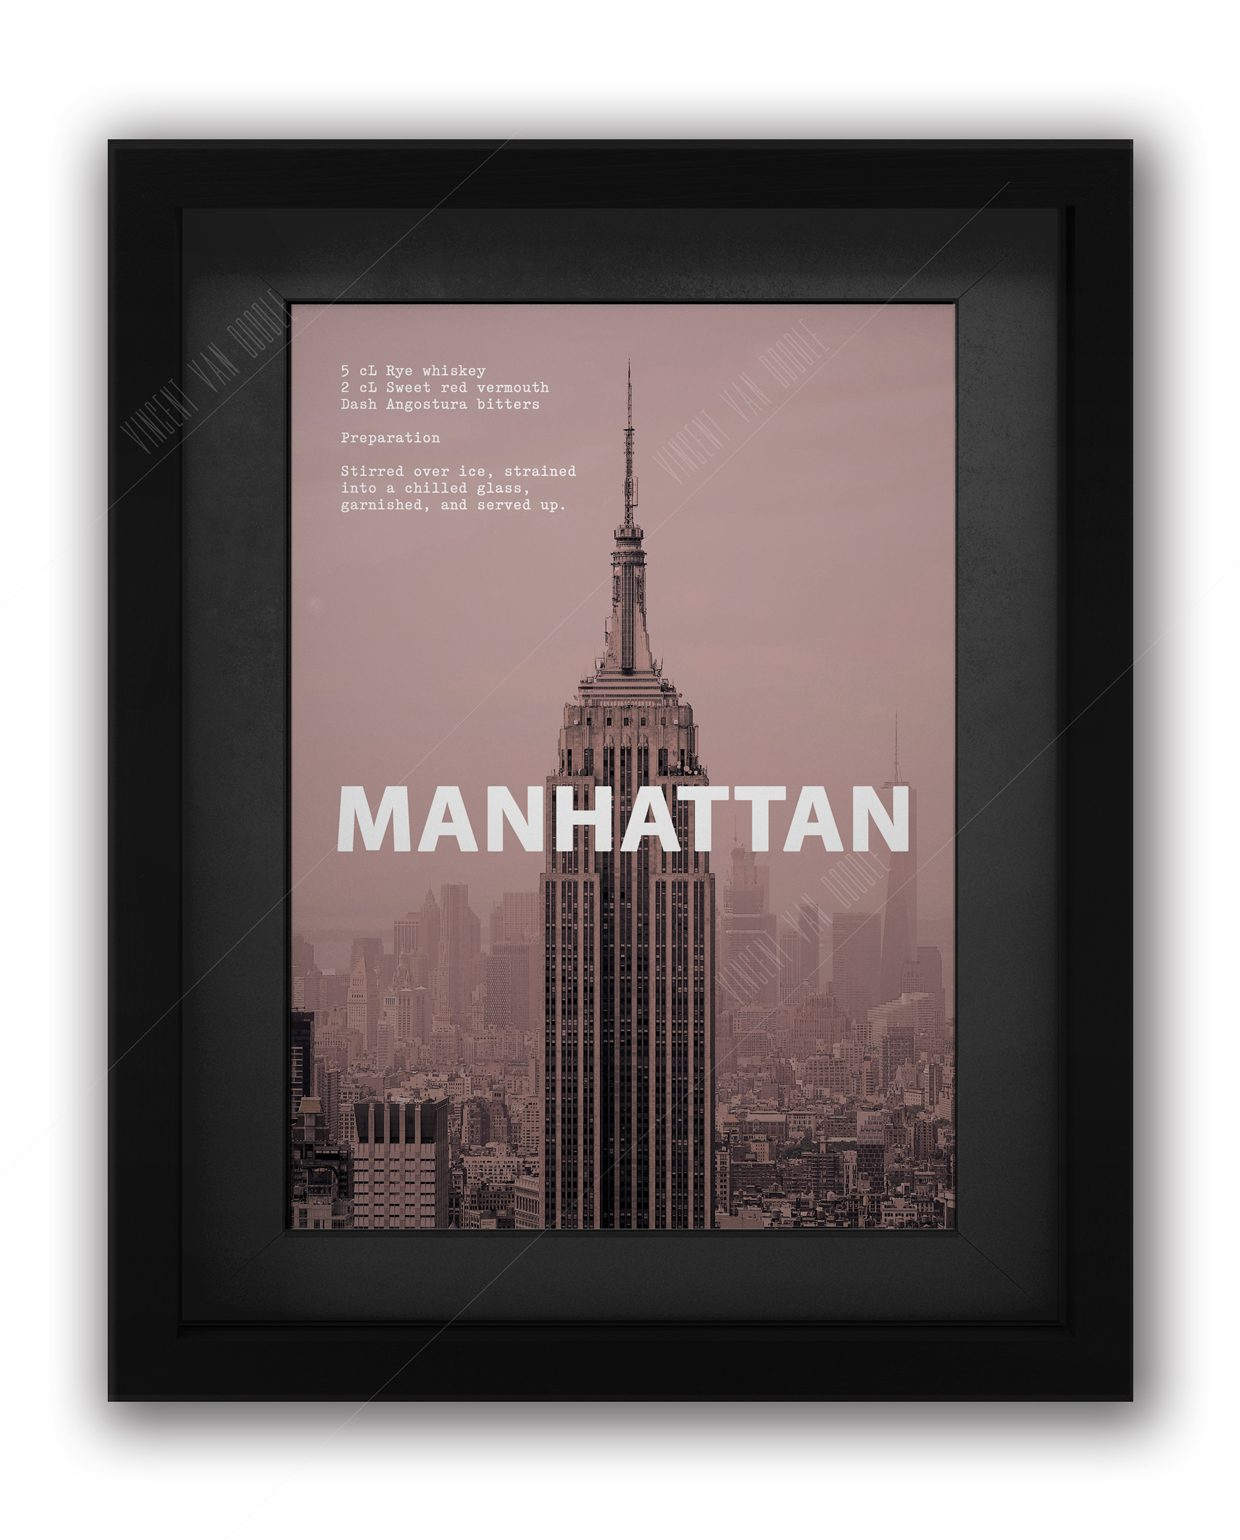 Manhattan-Framed-Black